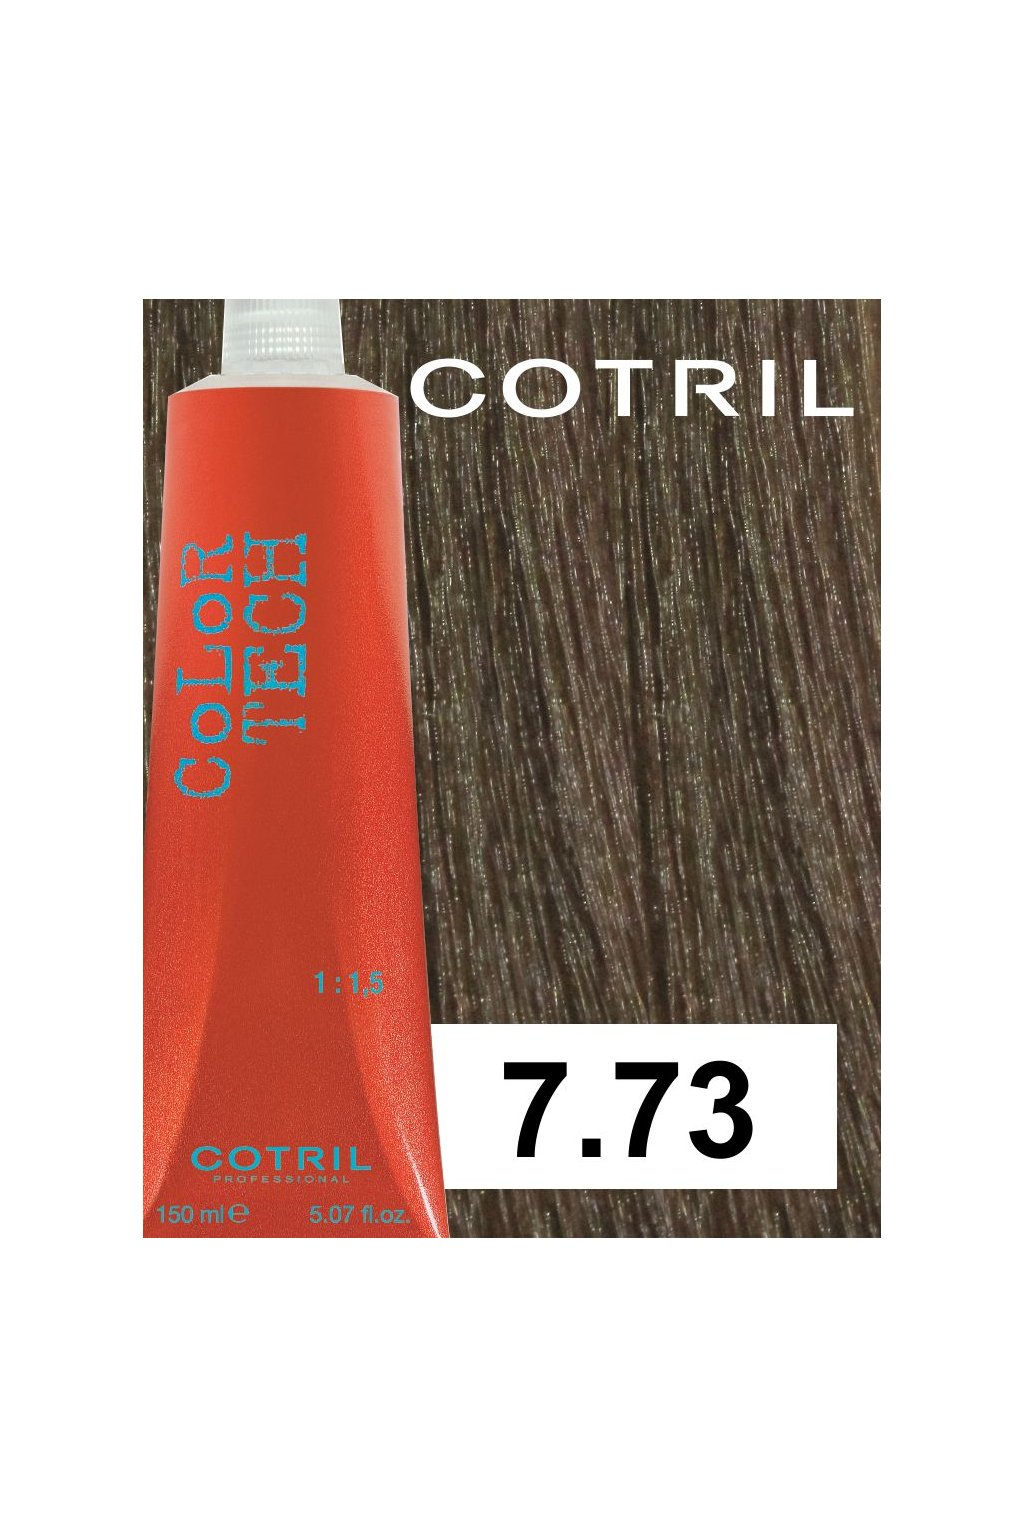 7 73 ct cotril